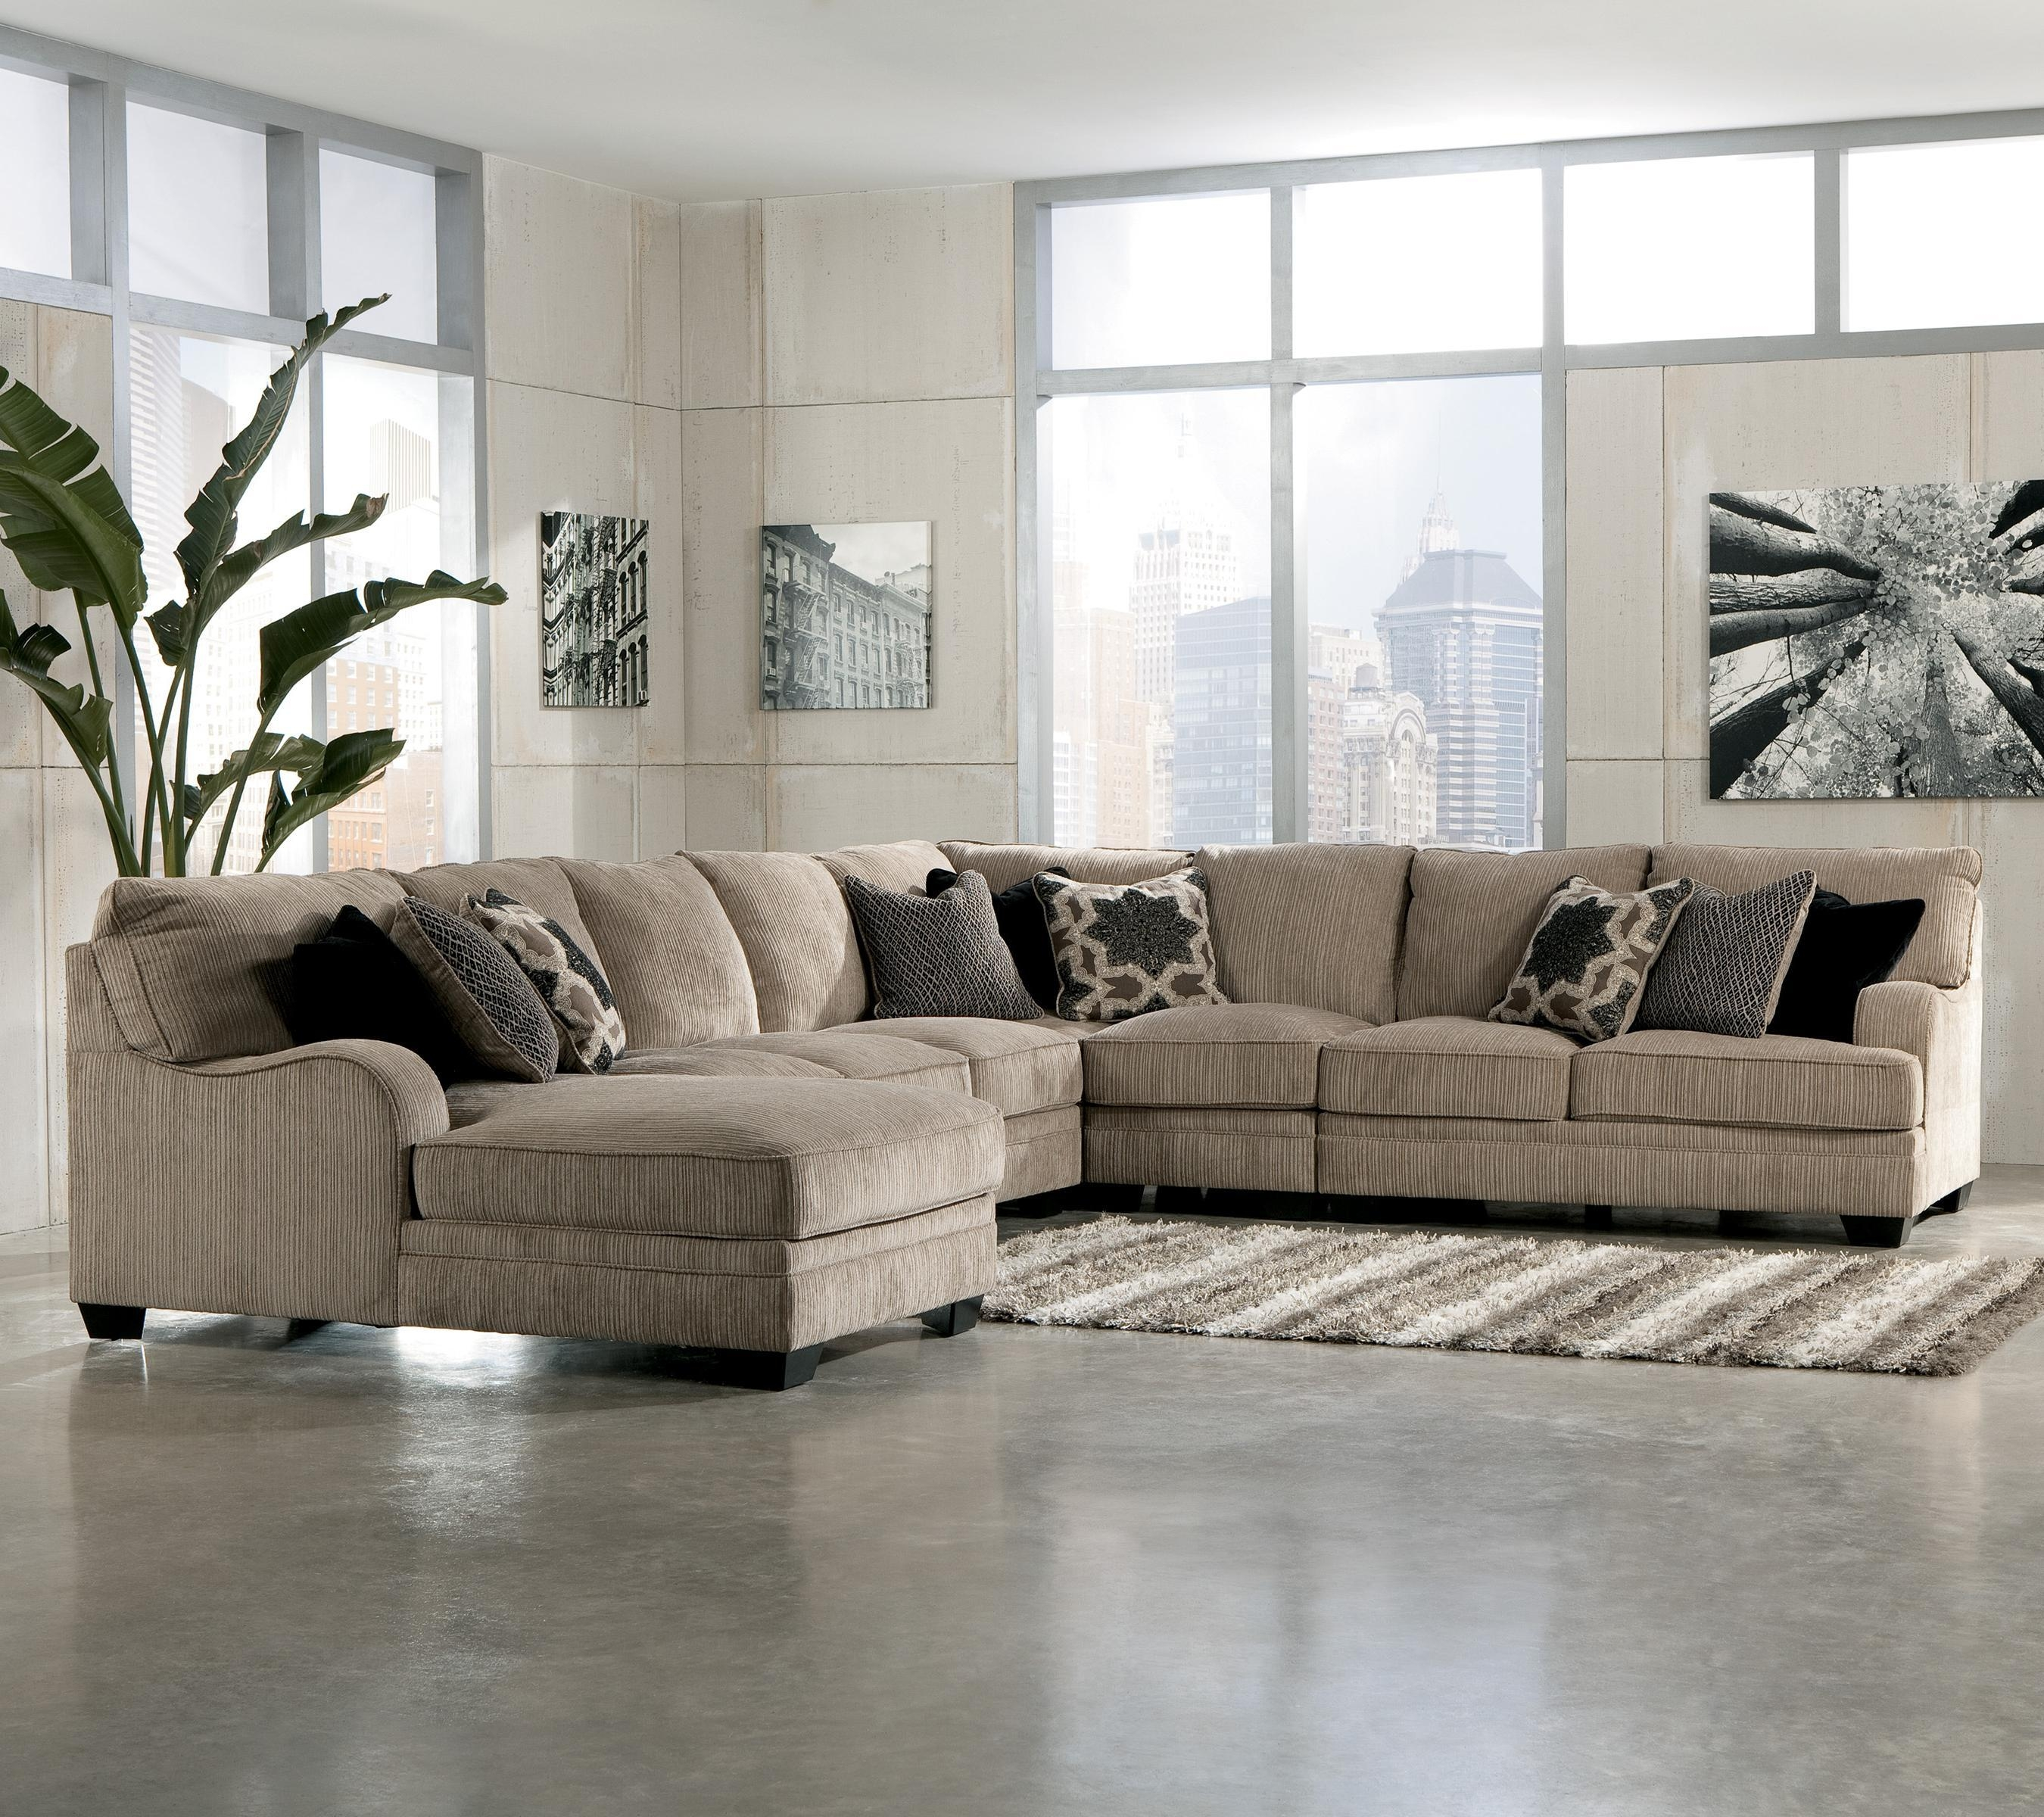 Signature Designashley Katisha – Platinum 5 Piece Sectional With Regard To Ashley Corduroy Sectional Sofas (View 9 of 20)